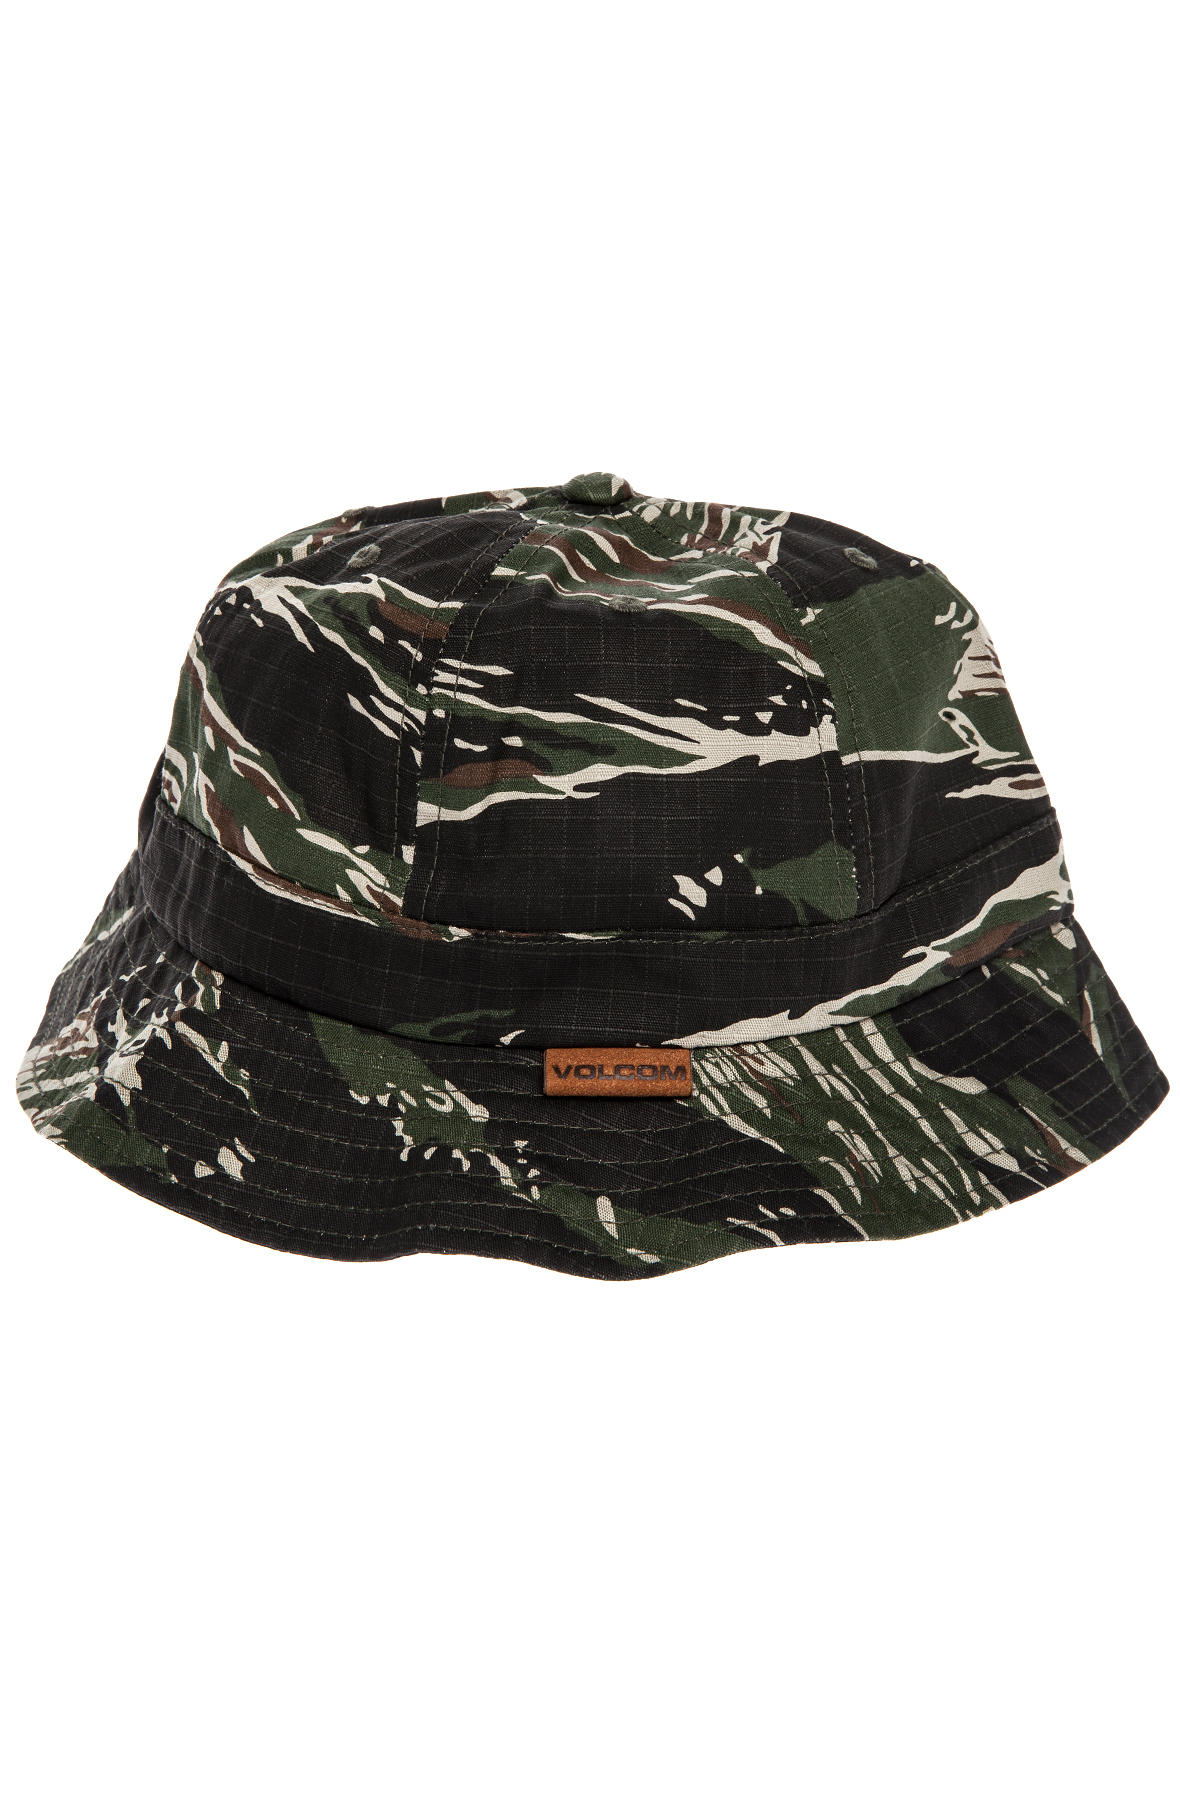 ... wholesale lyst volcom the estrada bucket hat in green for men 465a8  0fcac b10c3d2ce841